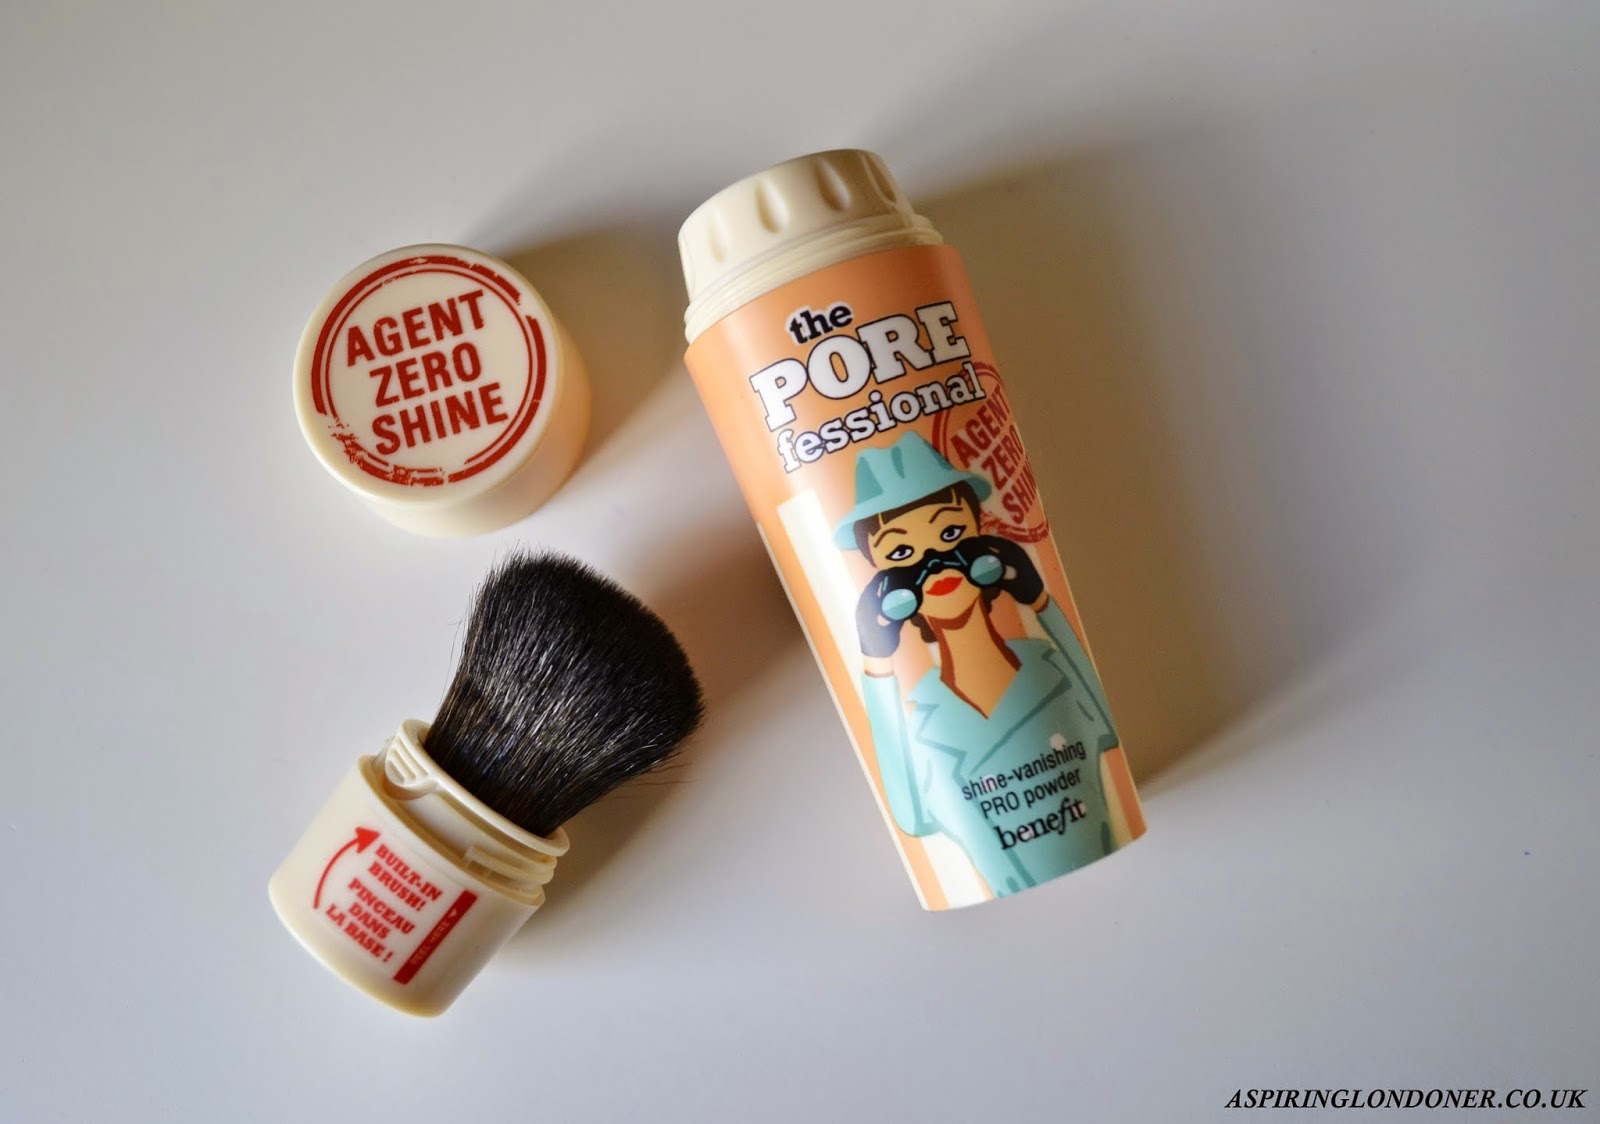 Benefit Cosmetics Porefessional Agent Zero Shine Powder Review - Aspiring Londoner